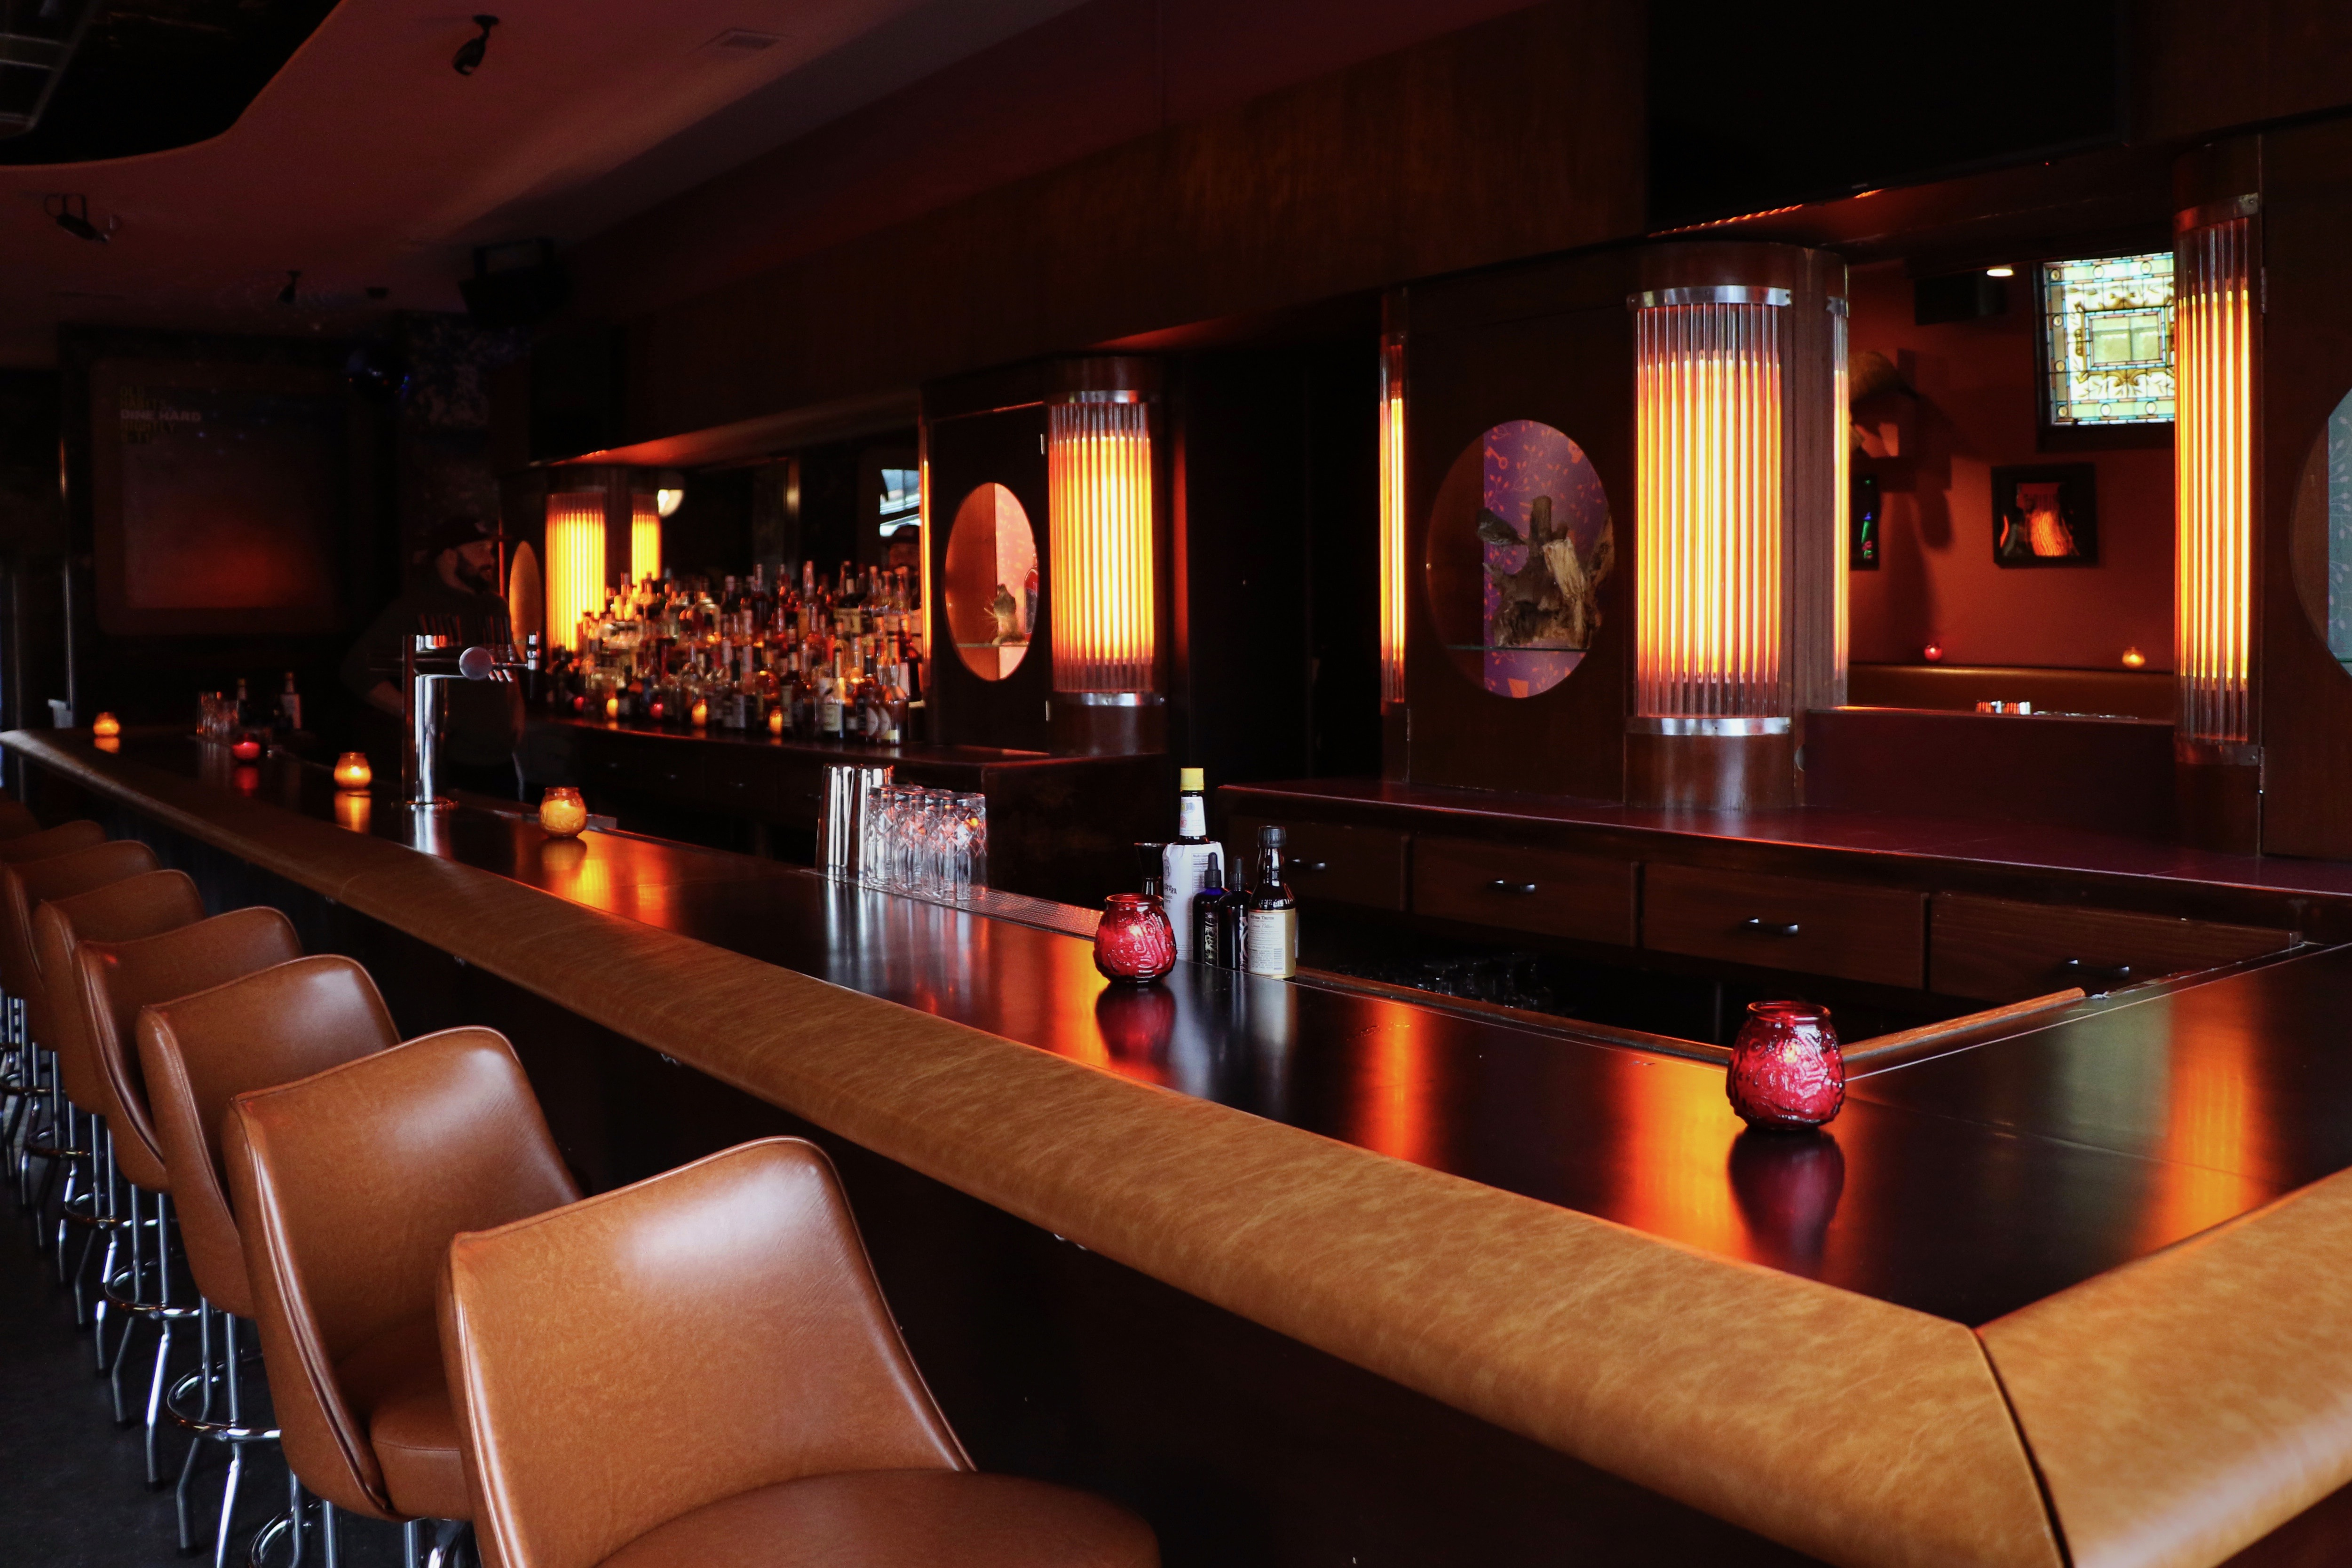 efe04e22116 The Best Places To Day Drink In Chicago - Chicago - The Infatuation